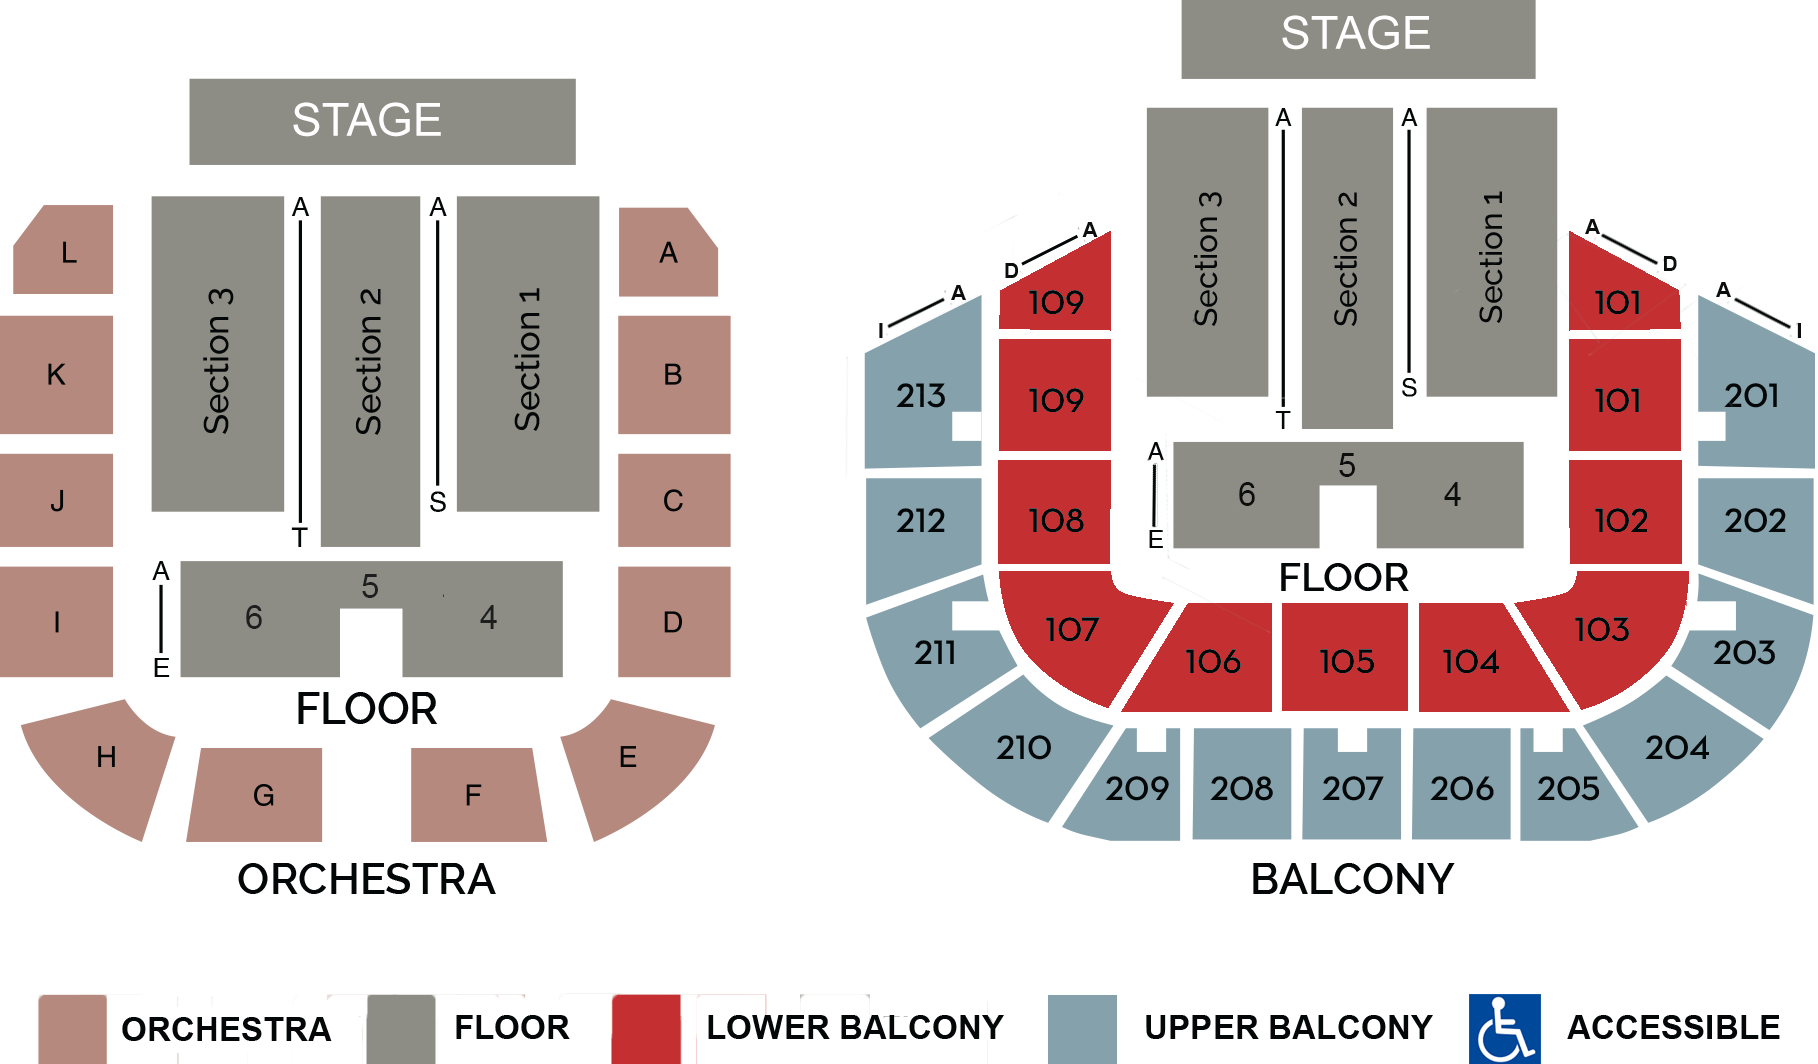 Seating Chart and Floor Layout of Shreveport Municipal Auditorium